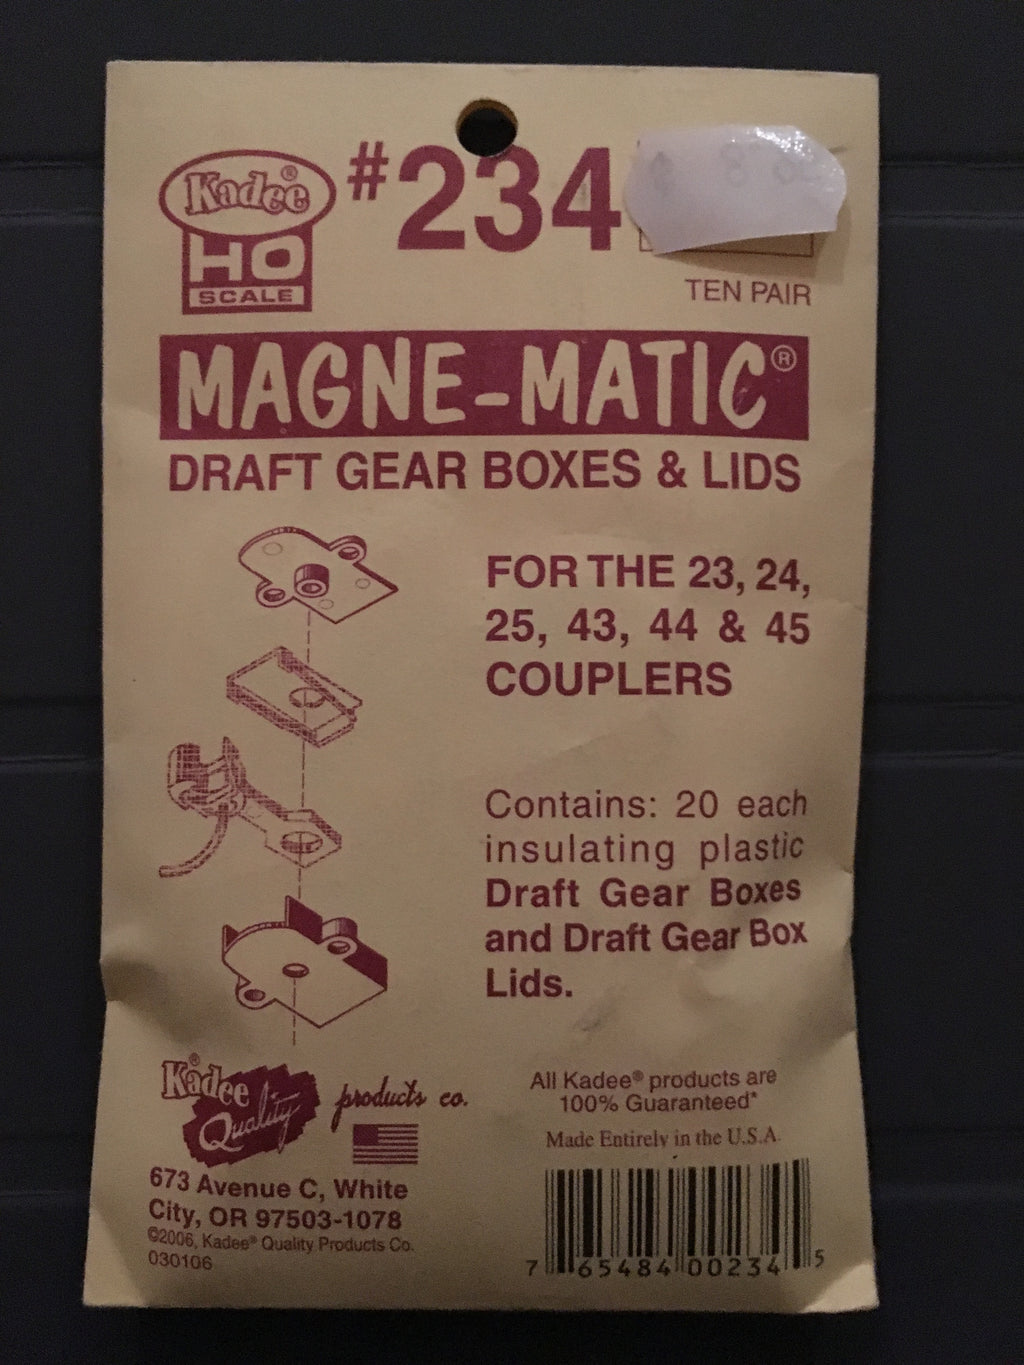 #234 Draft Gear Boxes and Lids for23, 24, 25, 43, 44, 45 Coupl